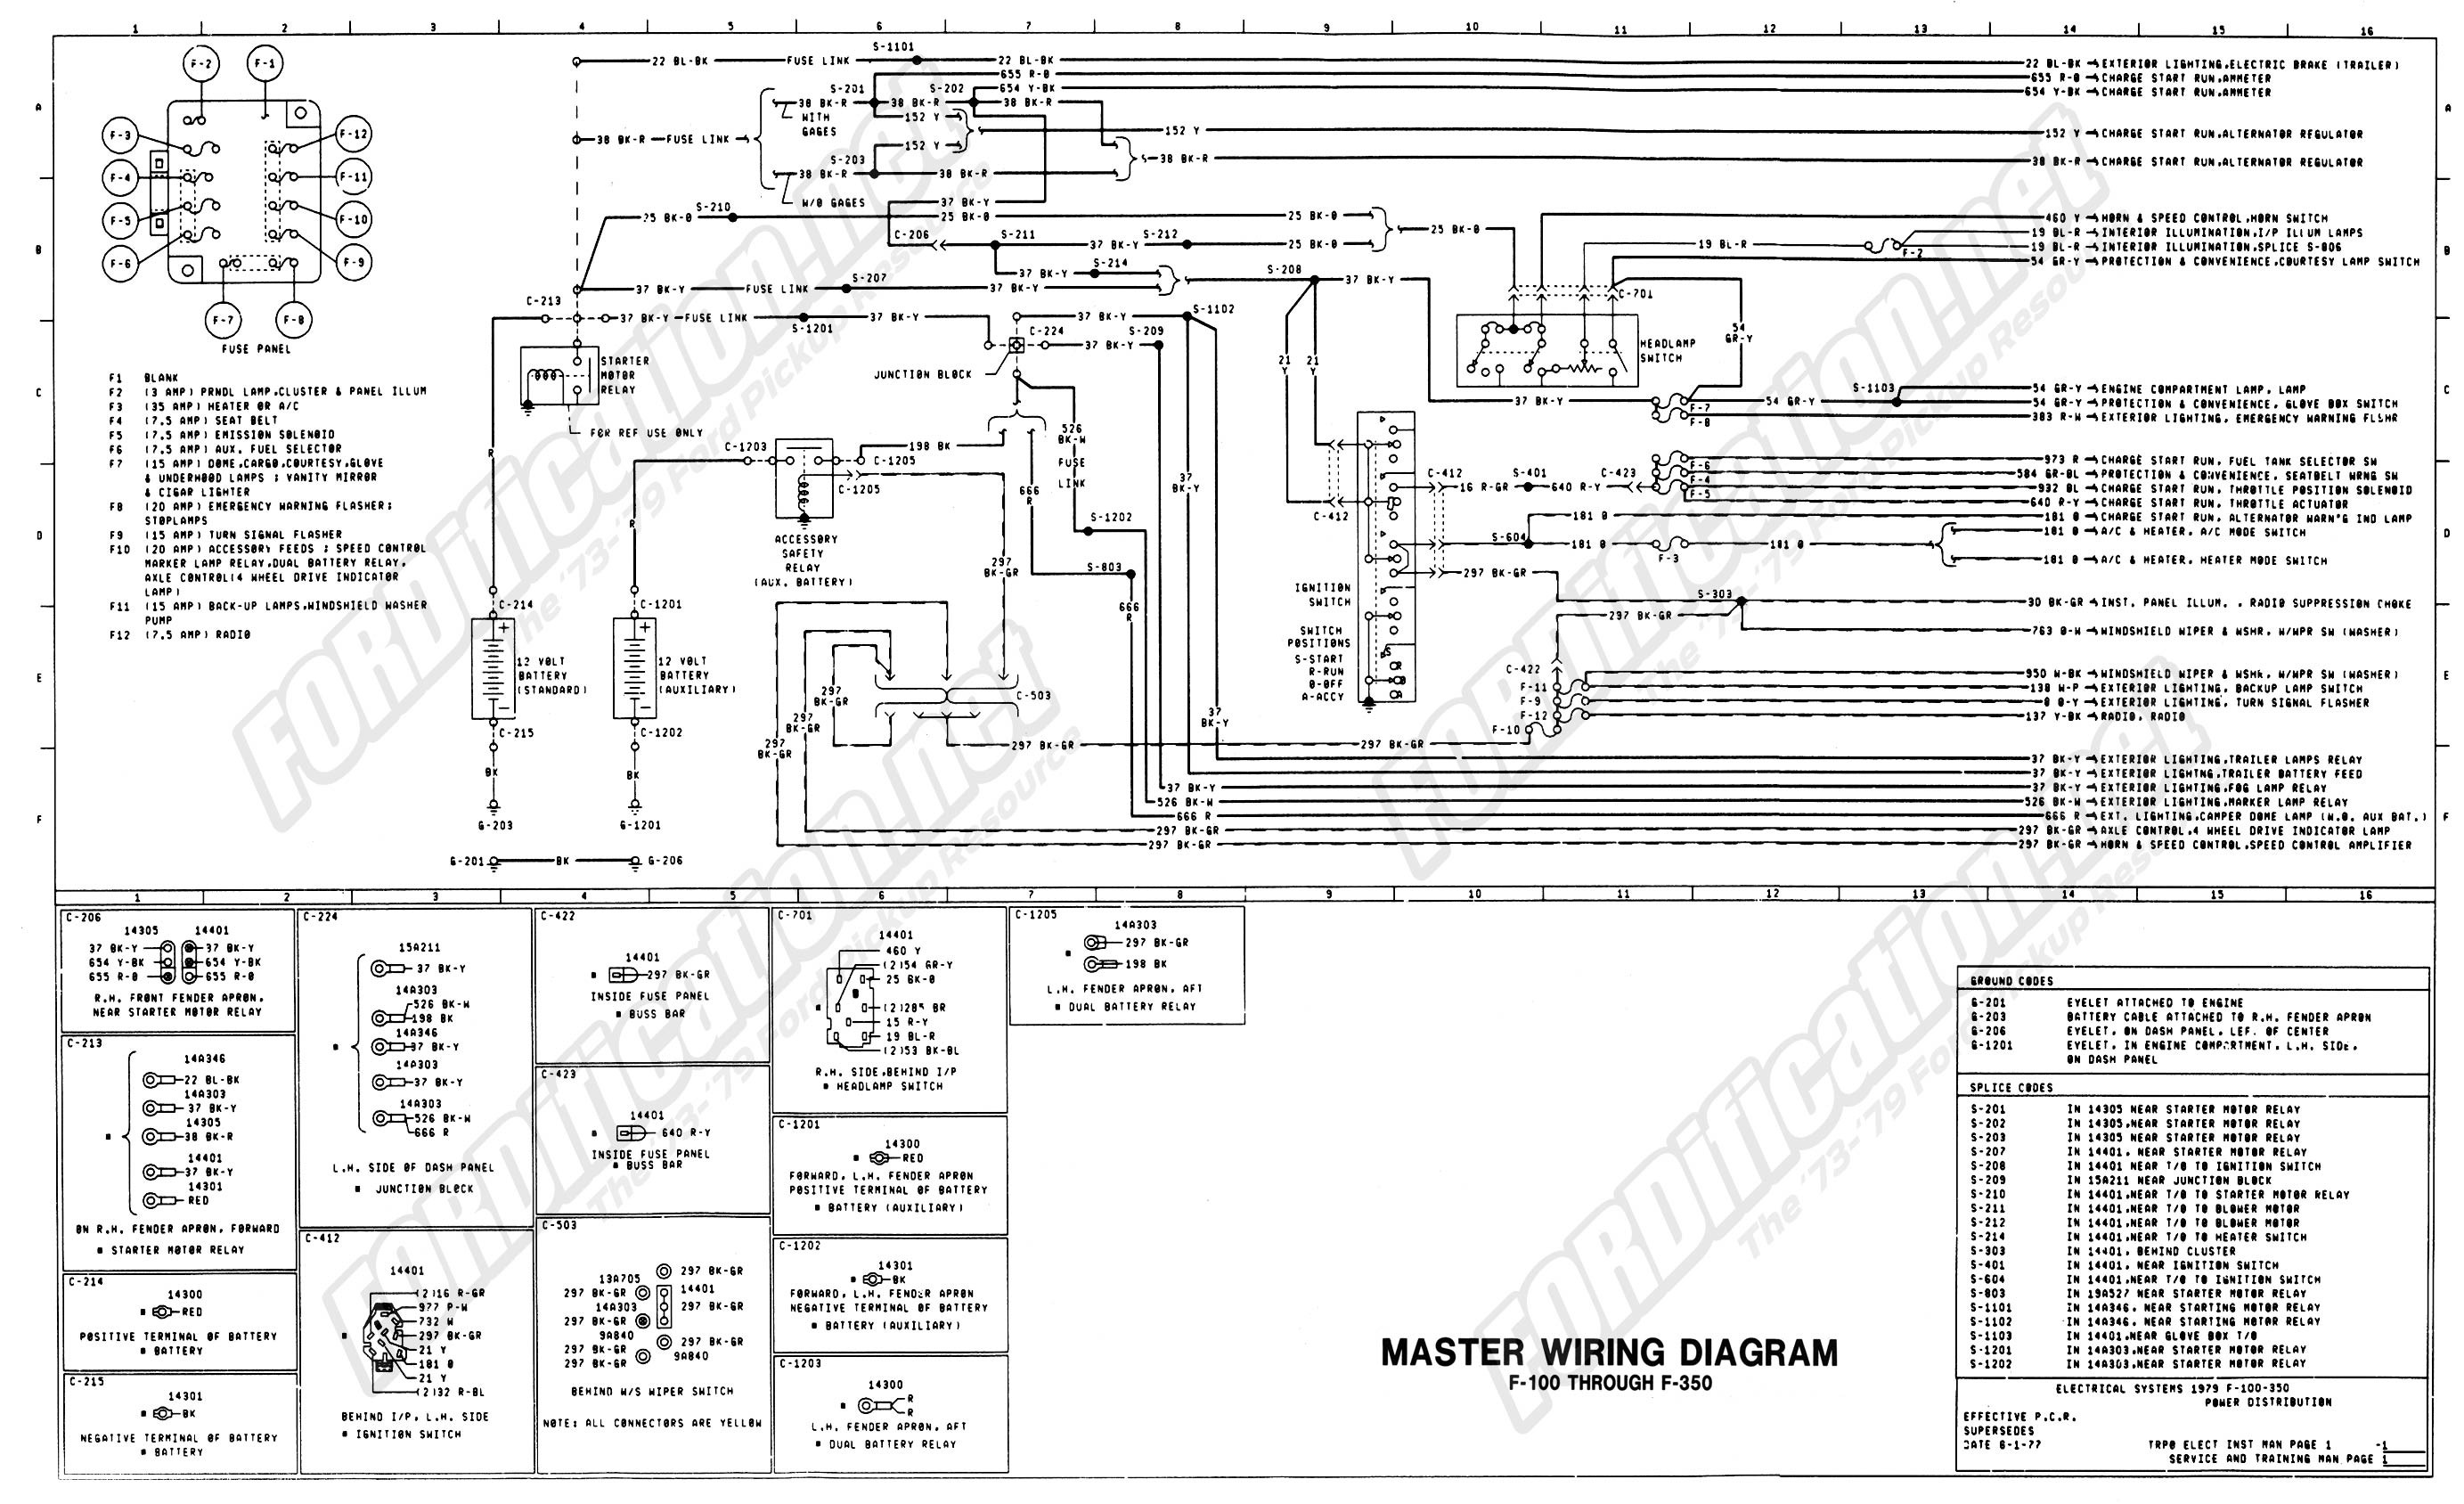 2003 ford Ranger Engine Diagram 79 F150 solenoid Wiring Diagram ford Truck  Enthusiasts forums Of 2003